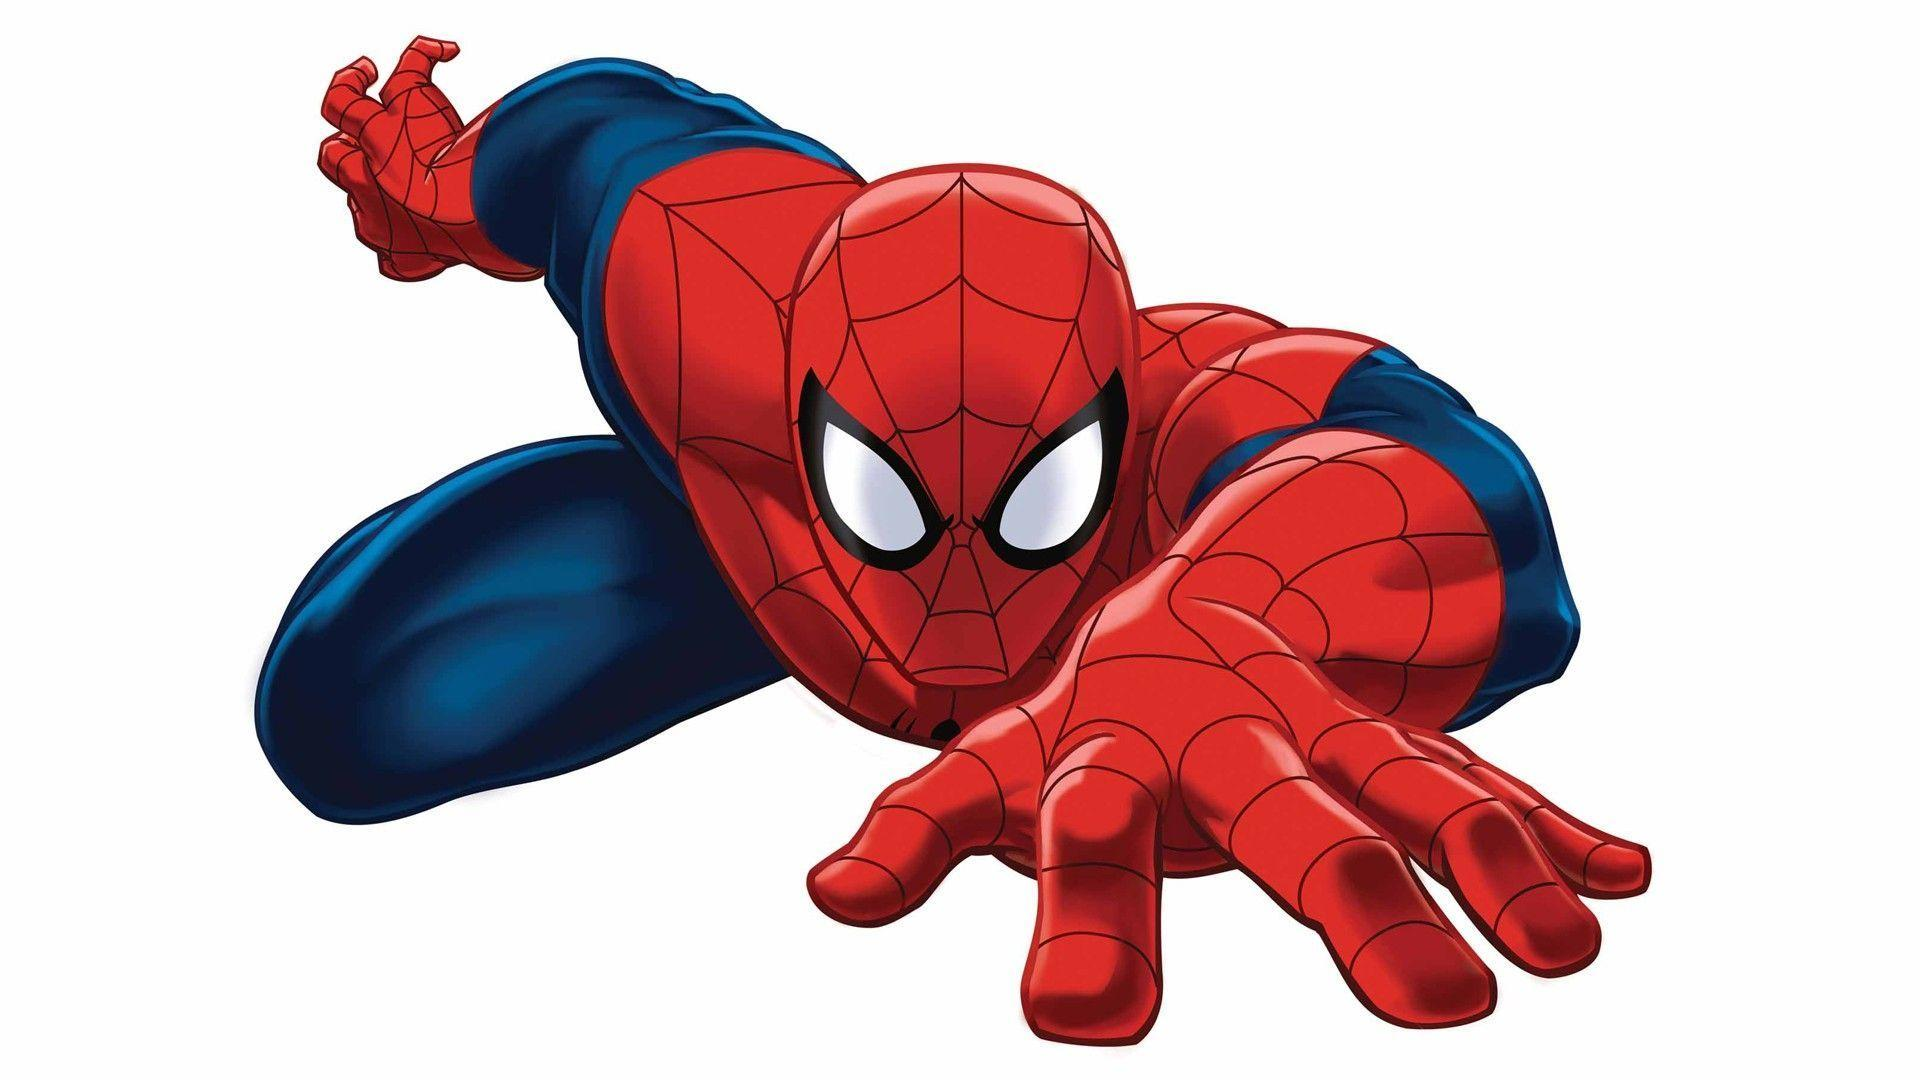 Spiderman Cartoon Background Wallpaper Taborat